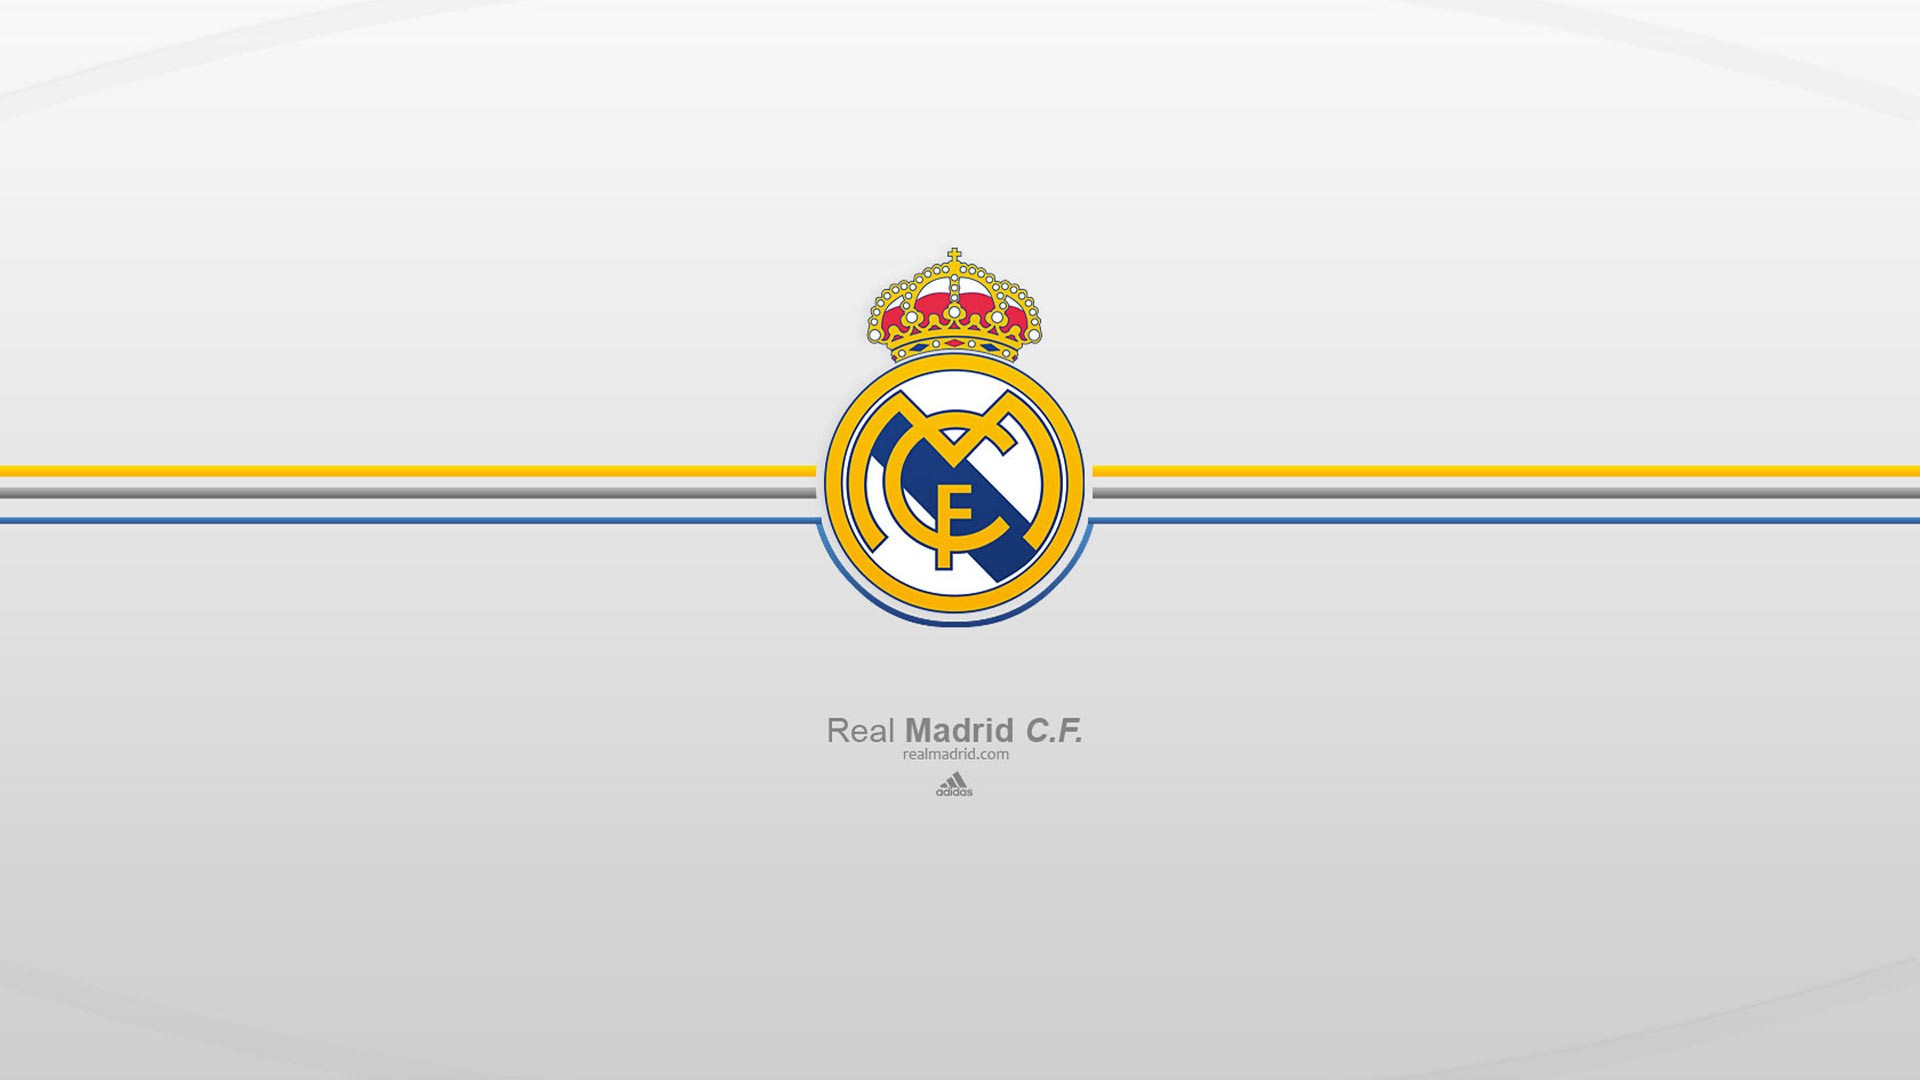 Real madrid clipart vector free stock Real madrid hd desktop clipart - ClipartFox vector free stock